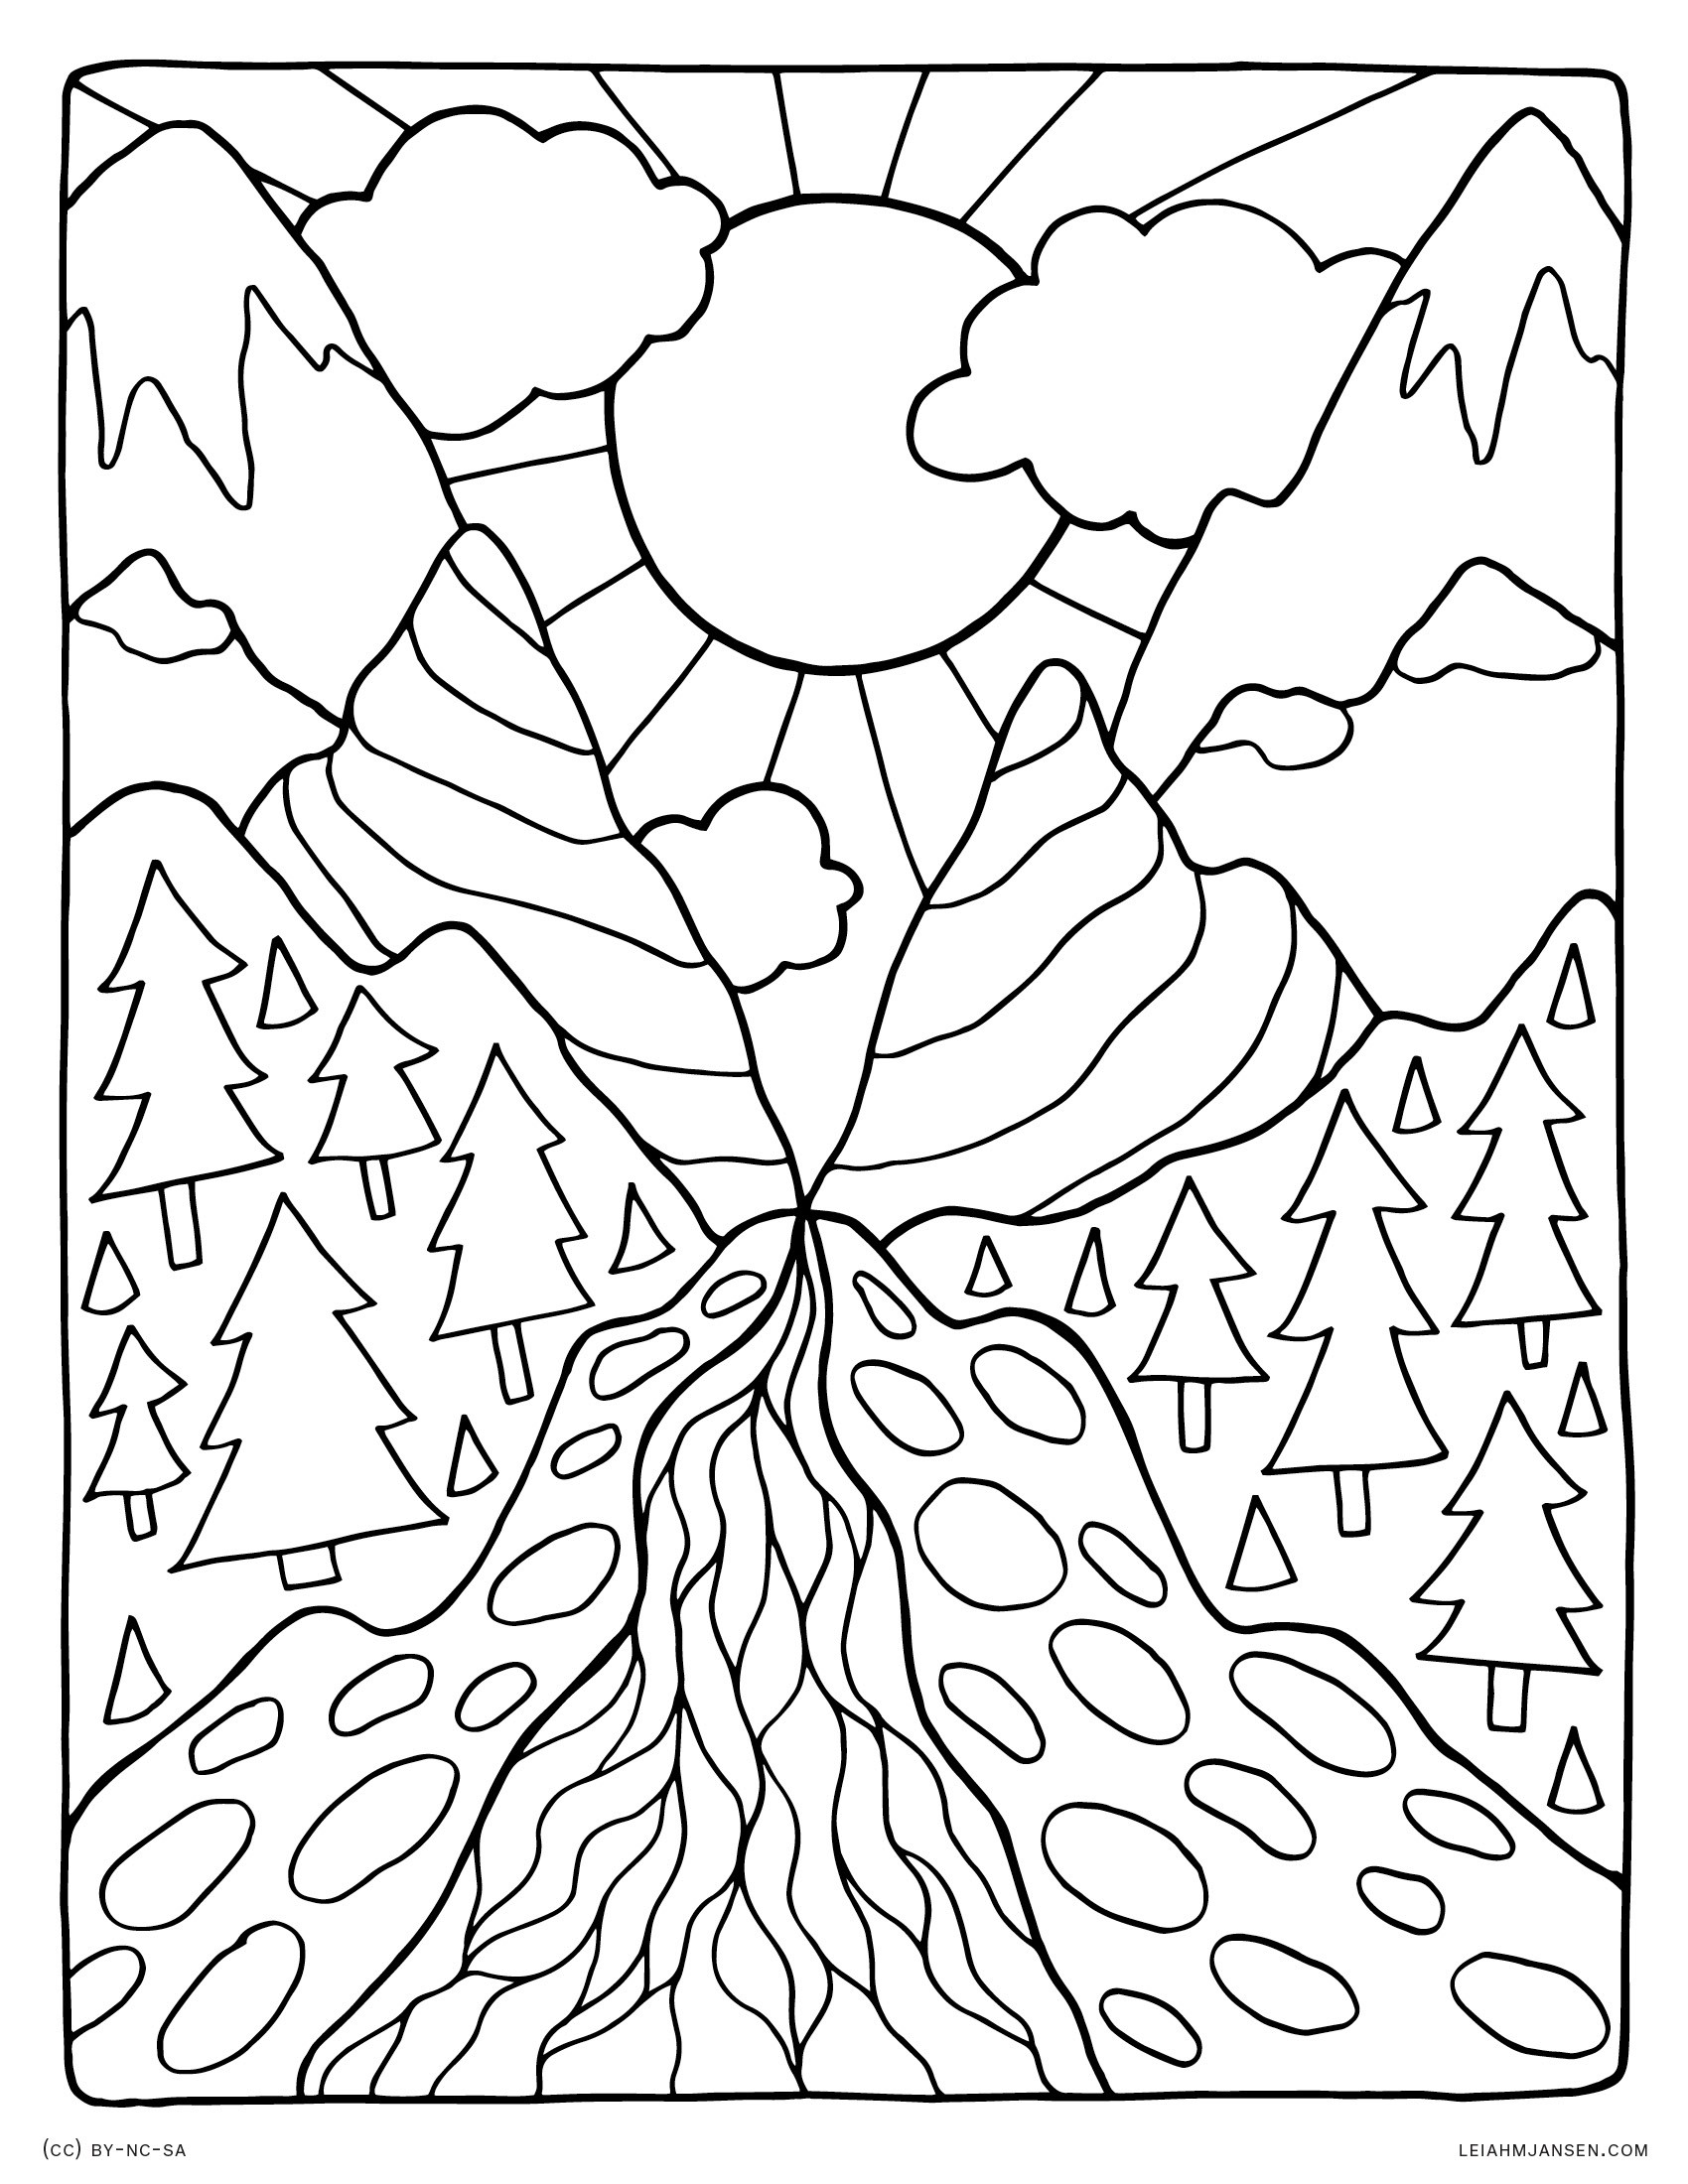 coloring for kids nature printable nature coloring pages for kids nature for coloring kids